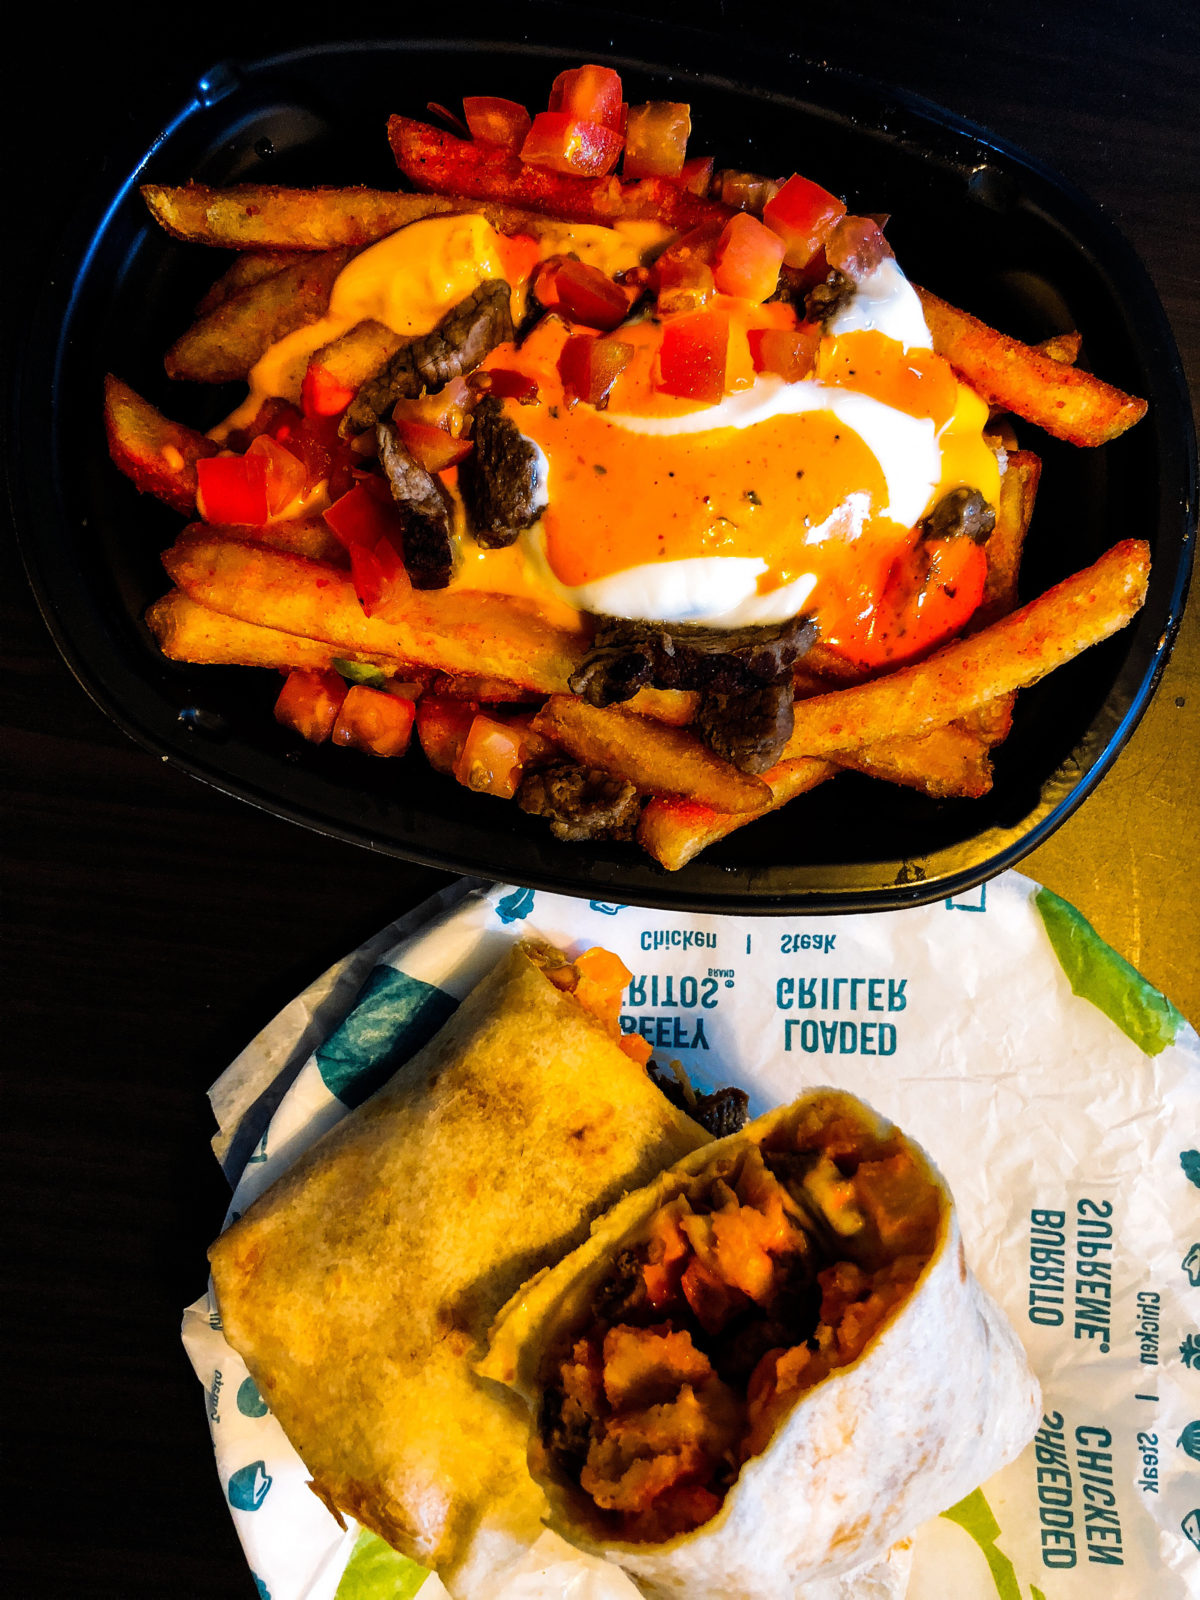 Taco Bell's Steak Reaper Ranch Fries Supreme (top) and Steak Reaper Ranch Fries Burrito (bottom)